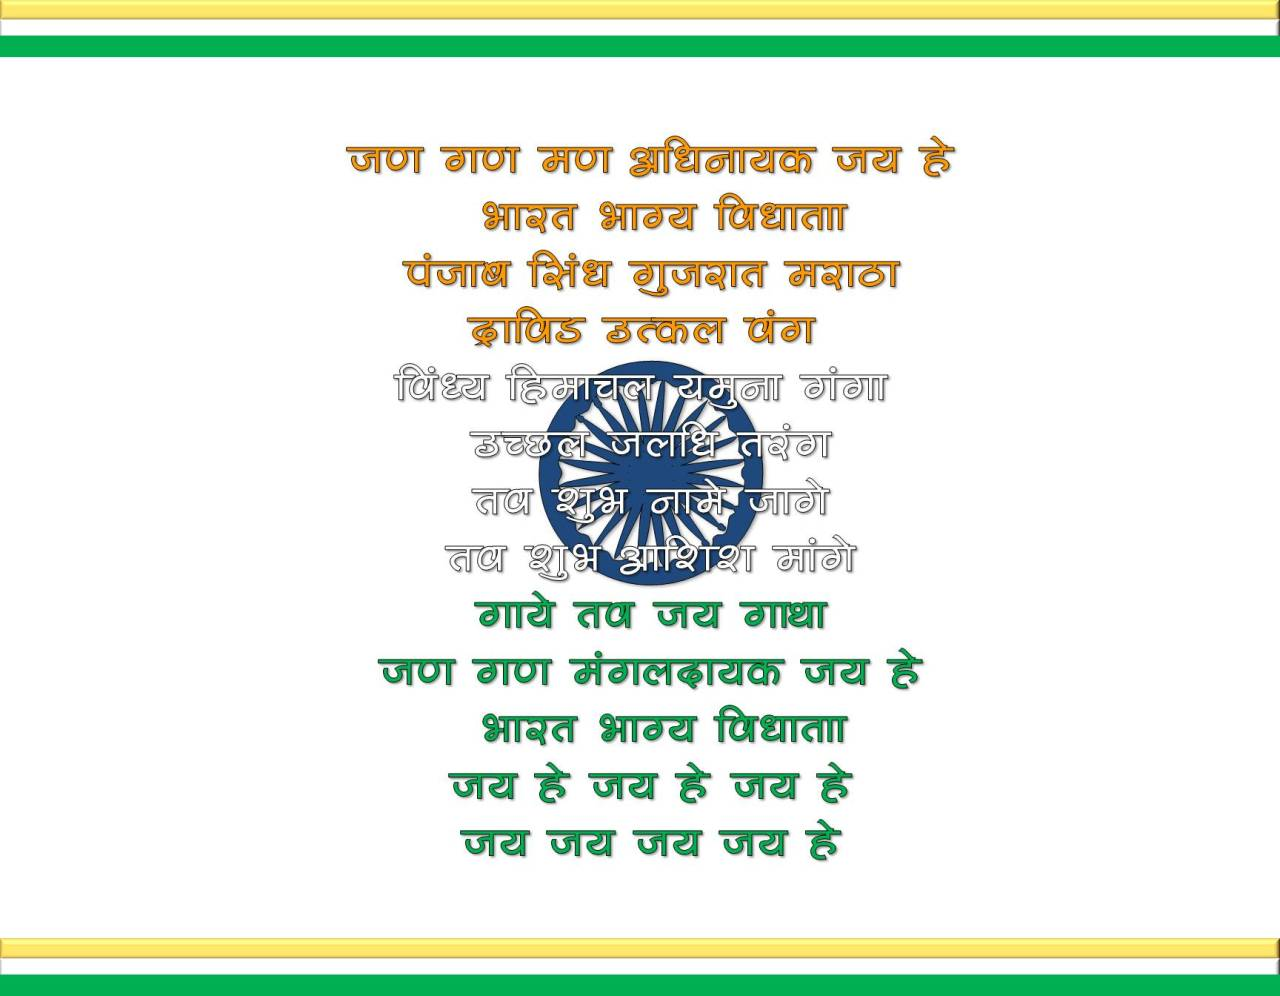 top facts every n must know about republic day image source